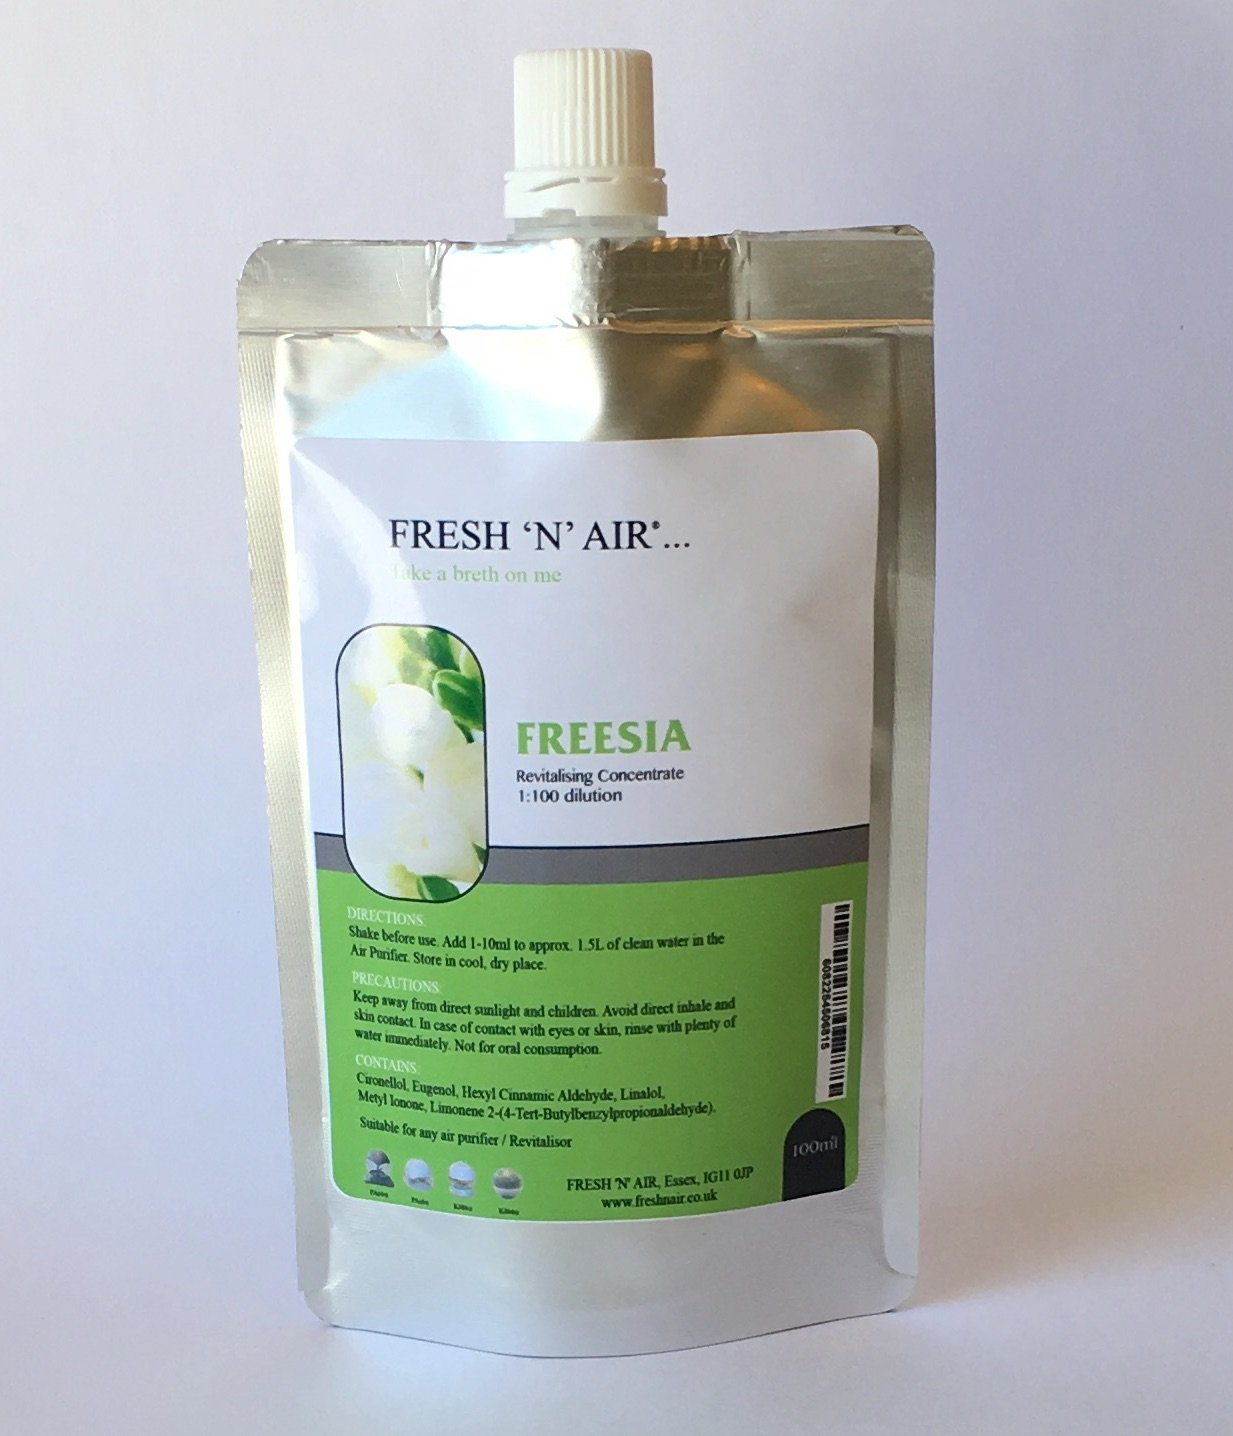 *FREESIA - Air Purifier Fragrance Essence (100ML) Fresh 'N' Air